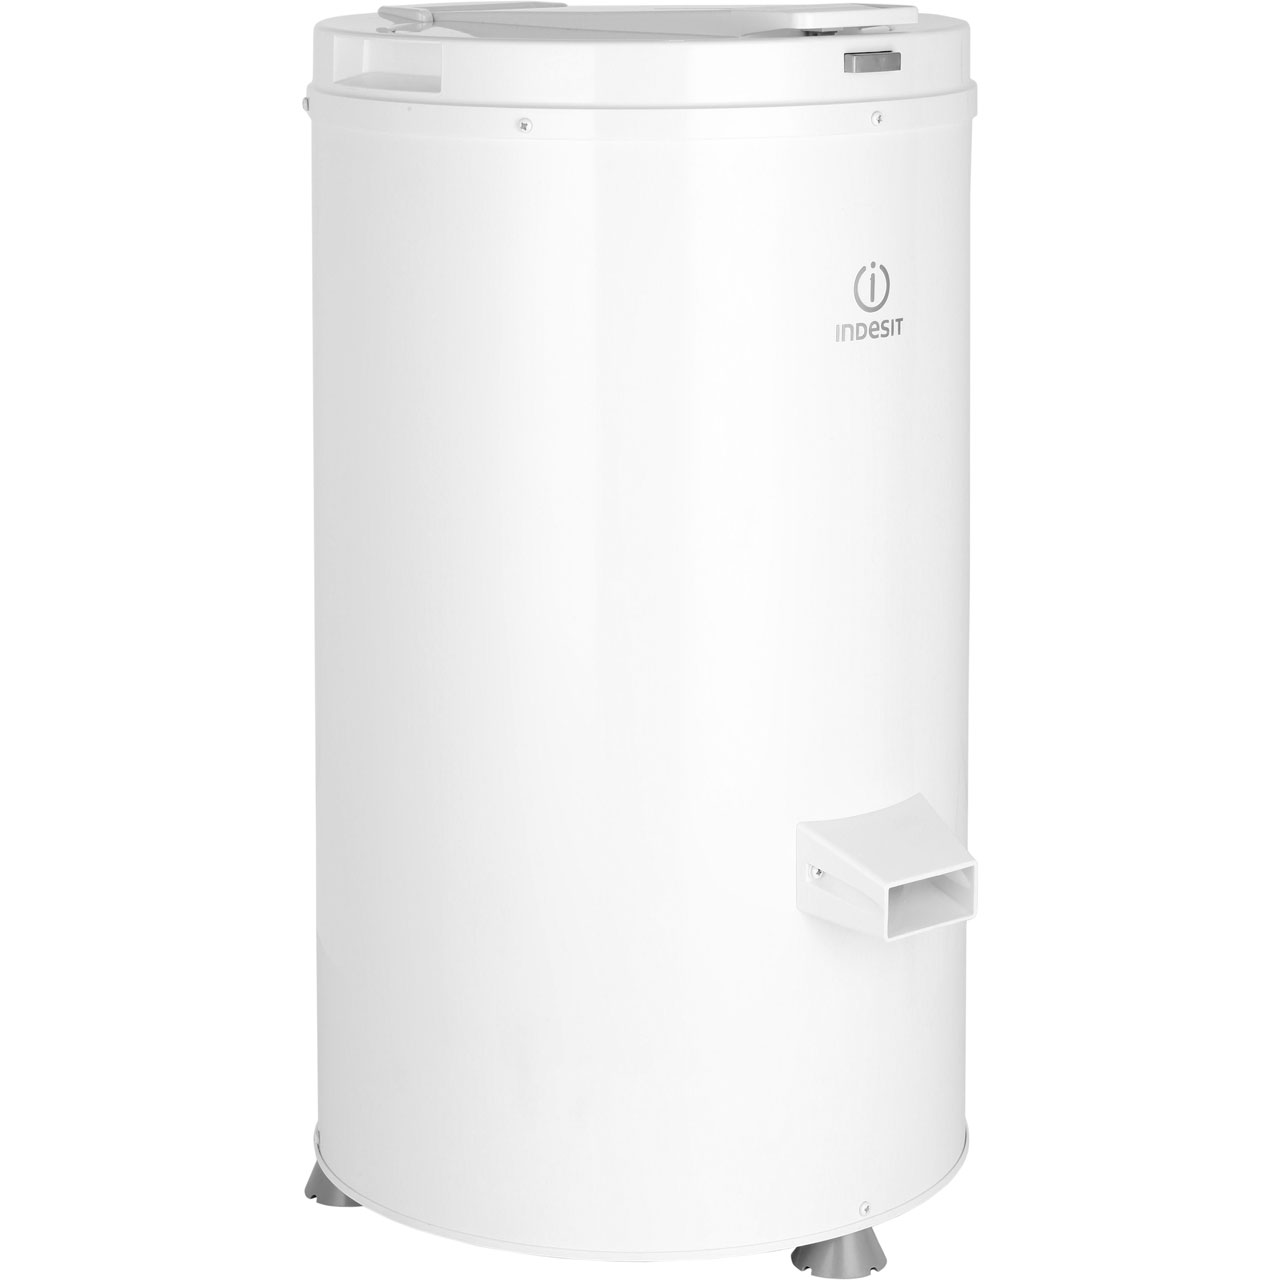 Indesit ISDG428 Free Standing Spin Dryer in White